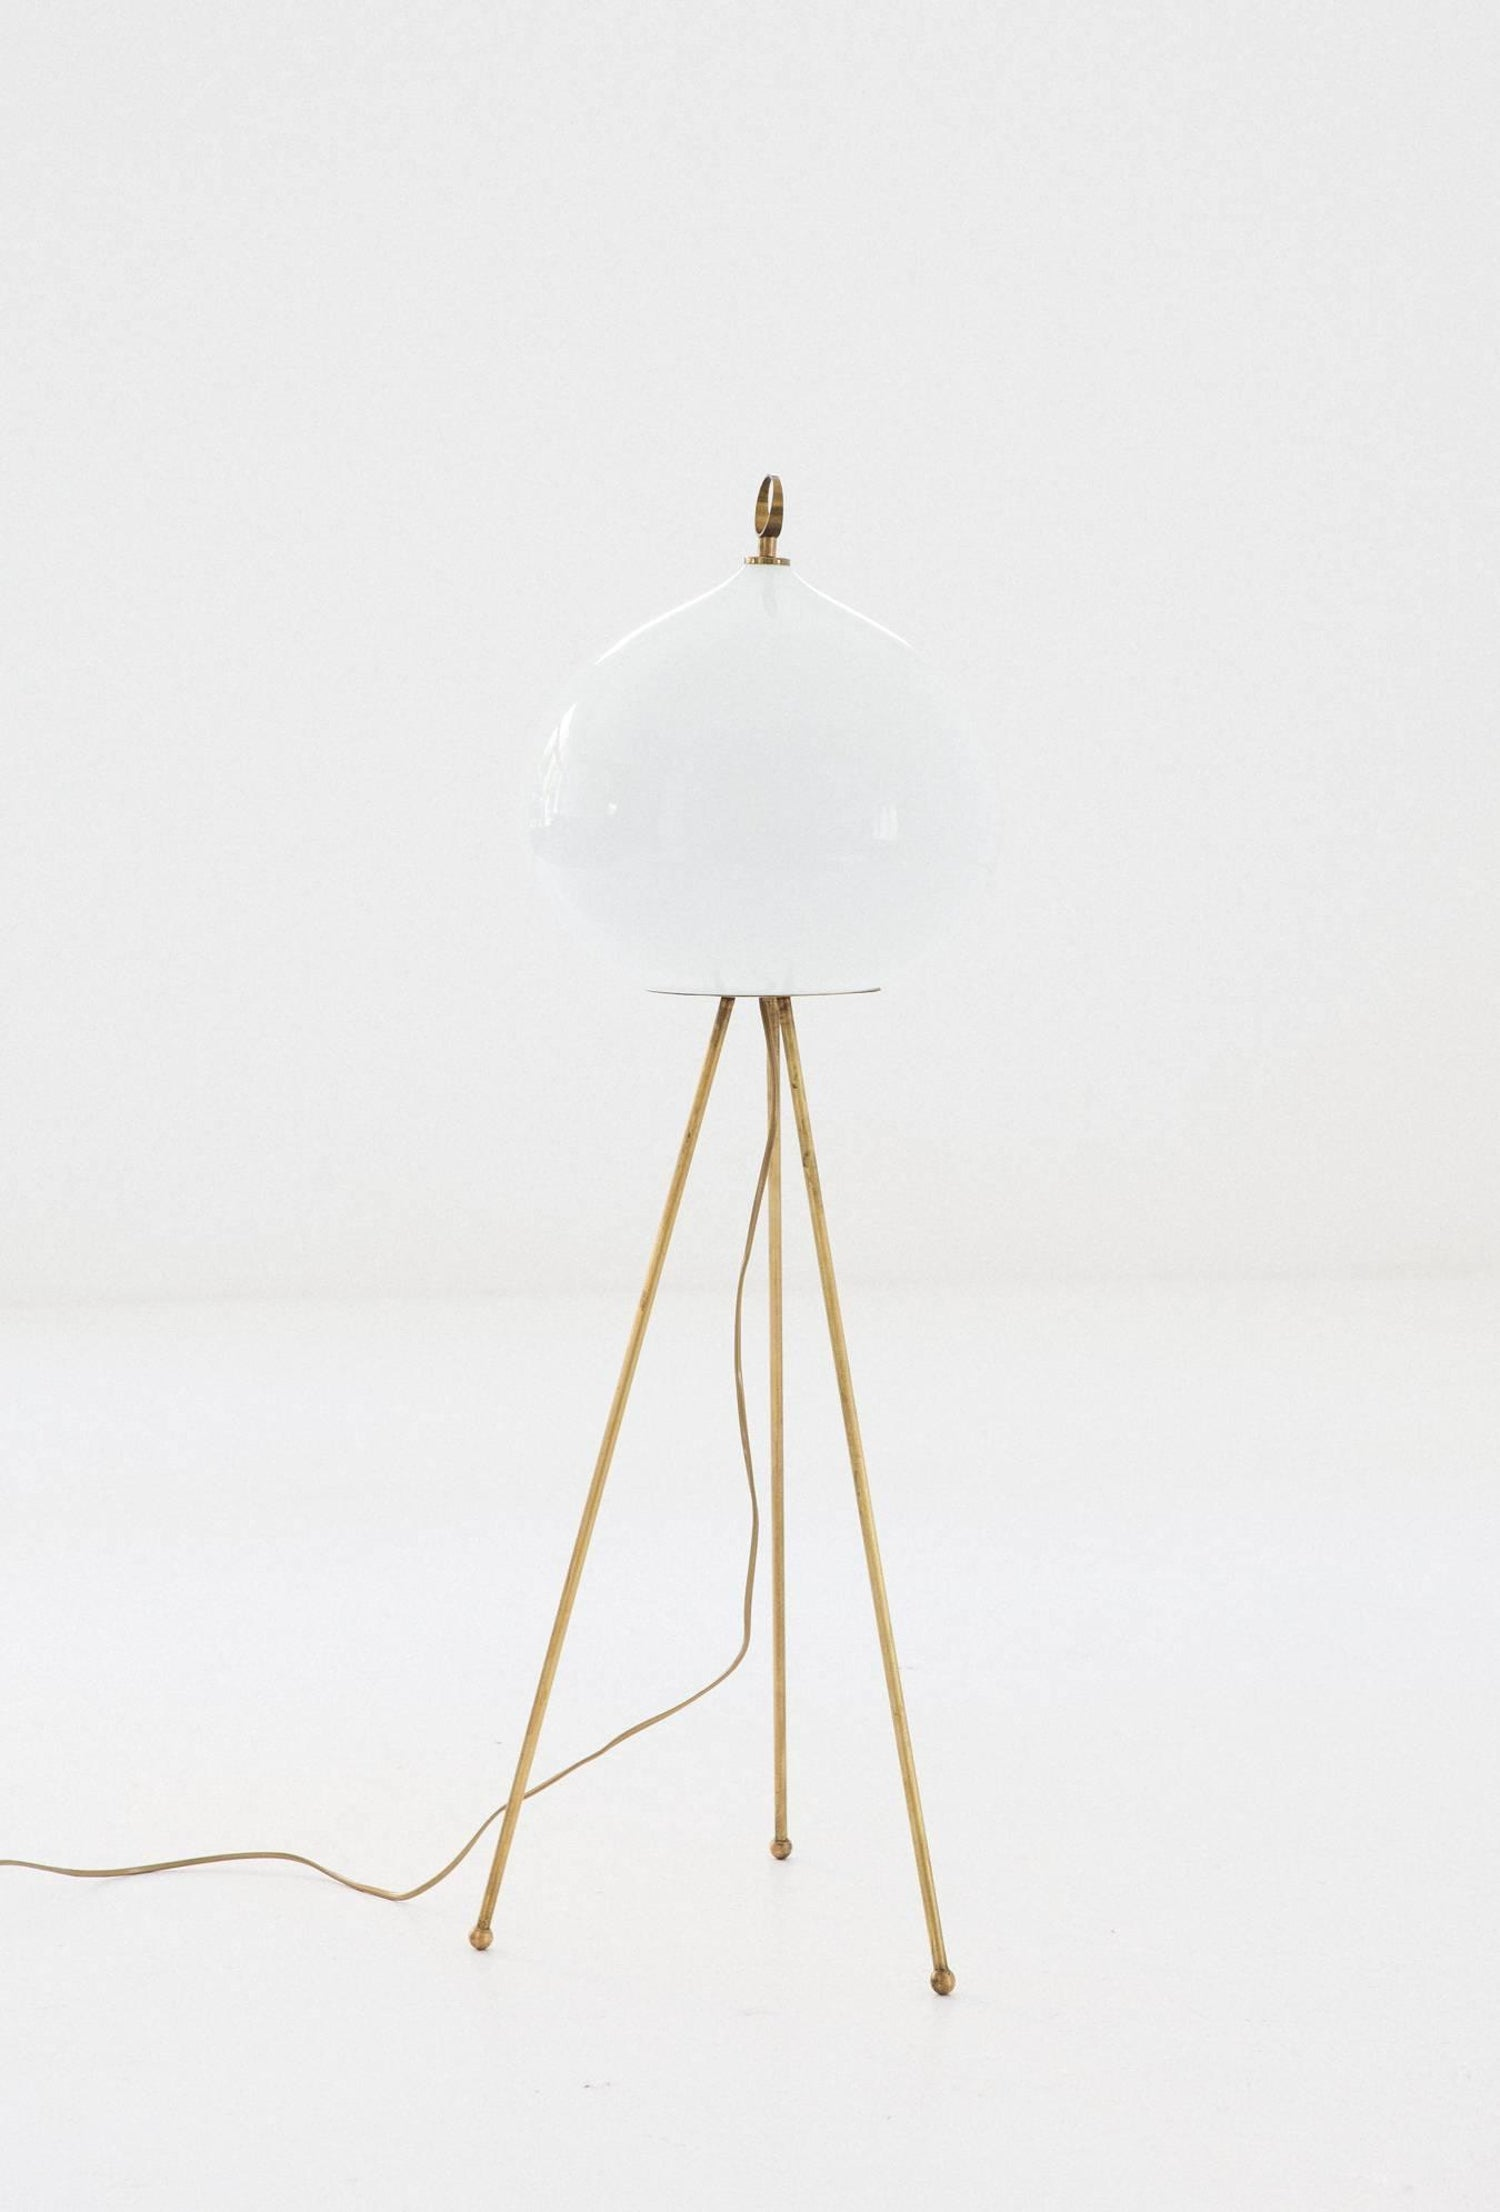 Italian Mid Century Modern Brass And Opaline Glass Floor Tripode Lamp,